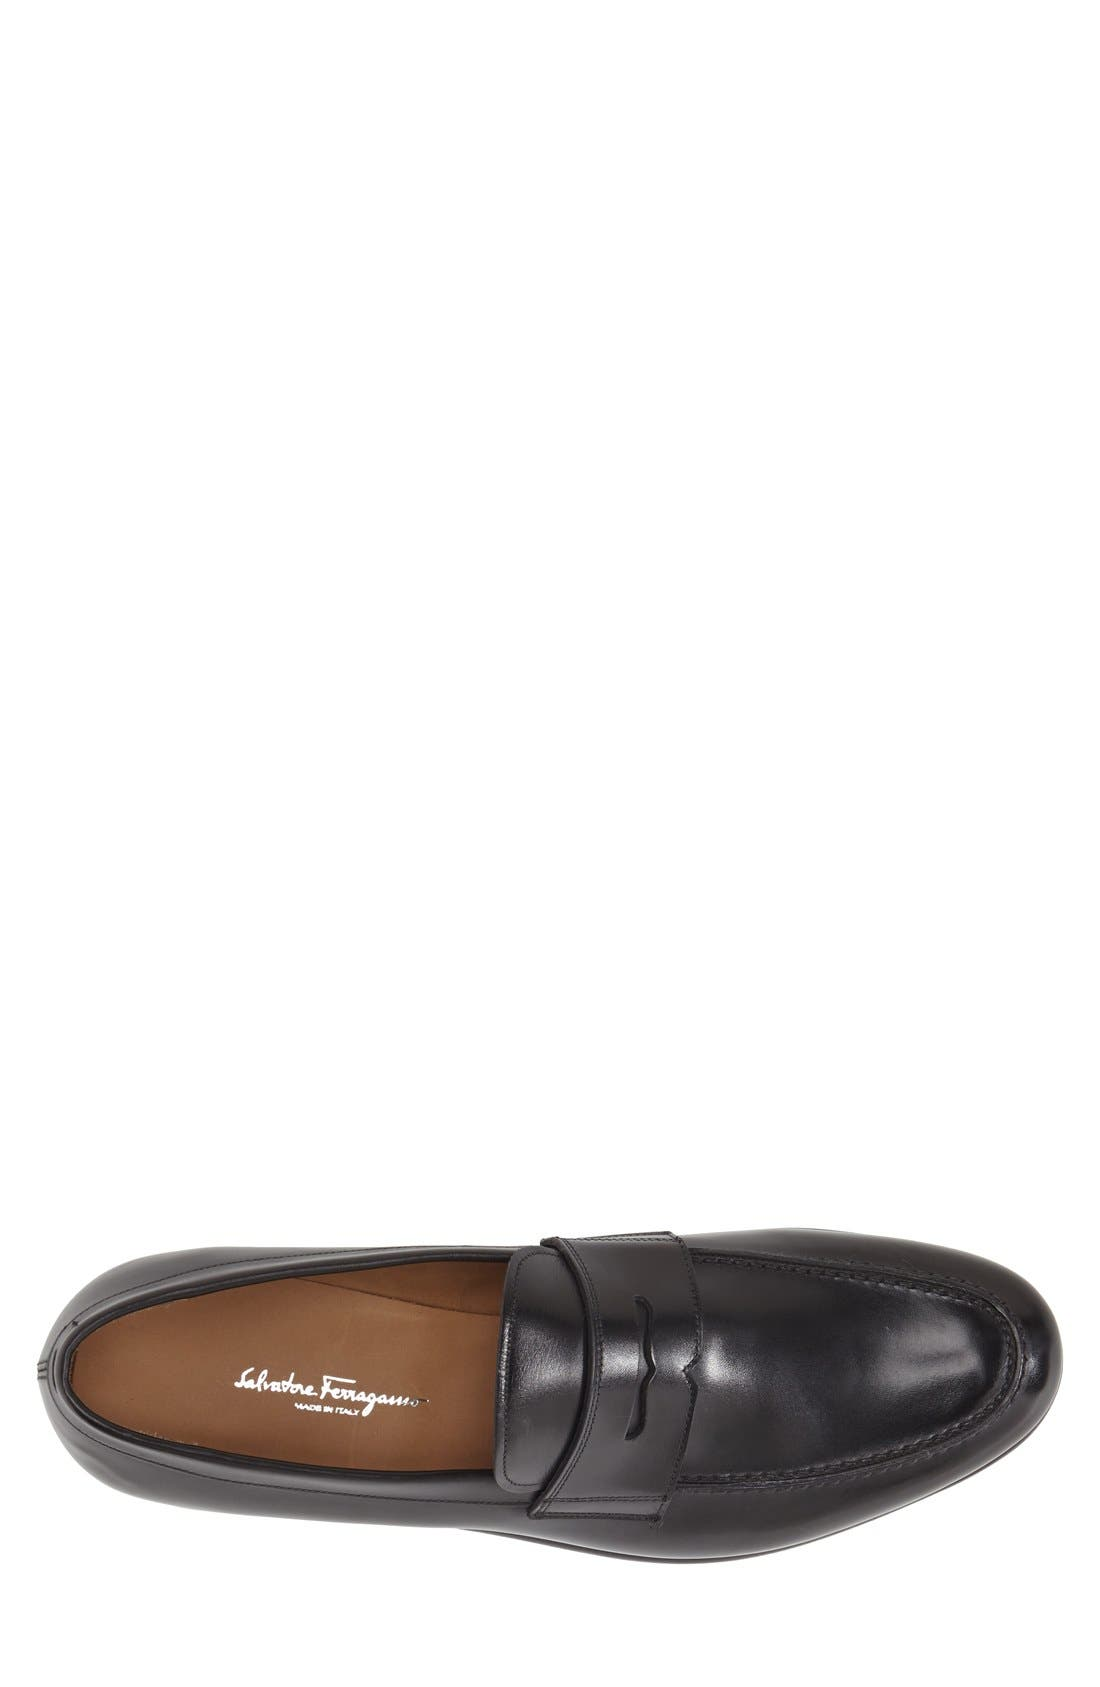 'Rinaldo' Penny Loafer,                             Alternate thumbnail 4, color,                             001